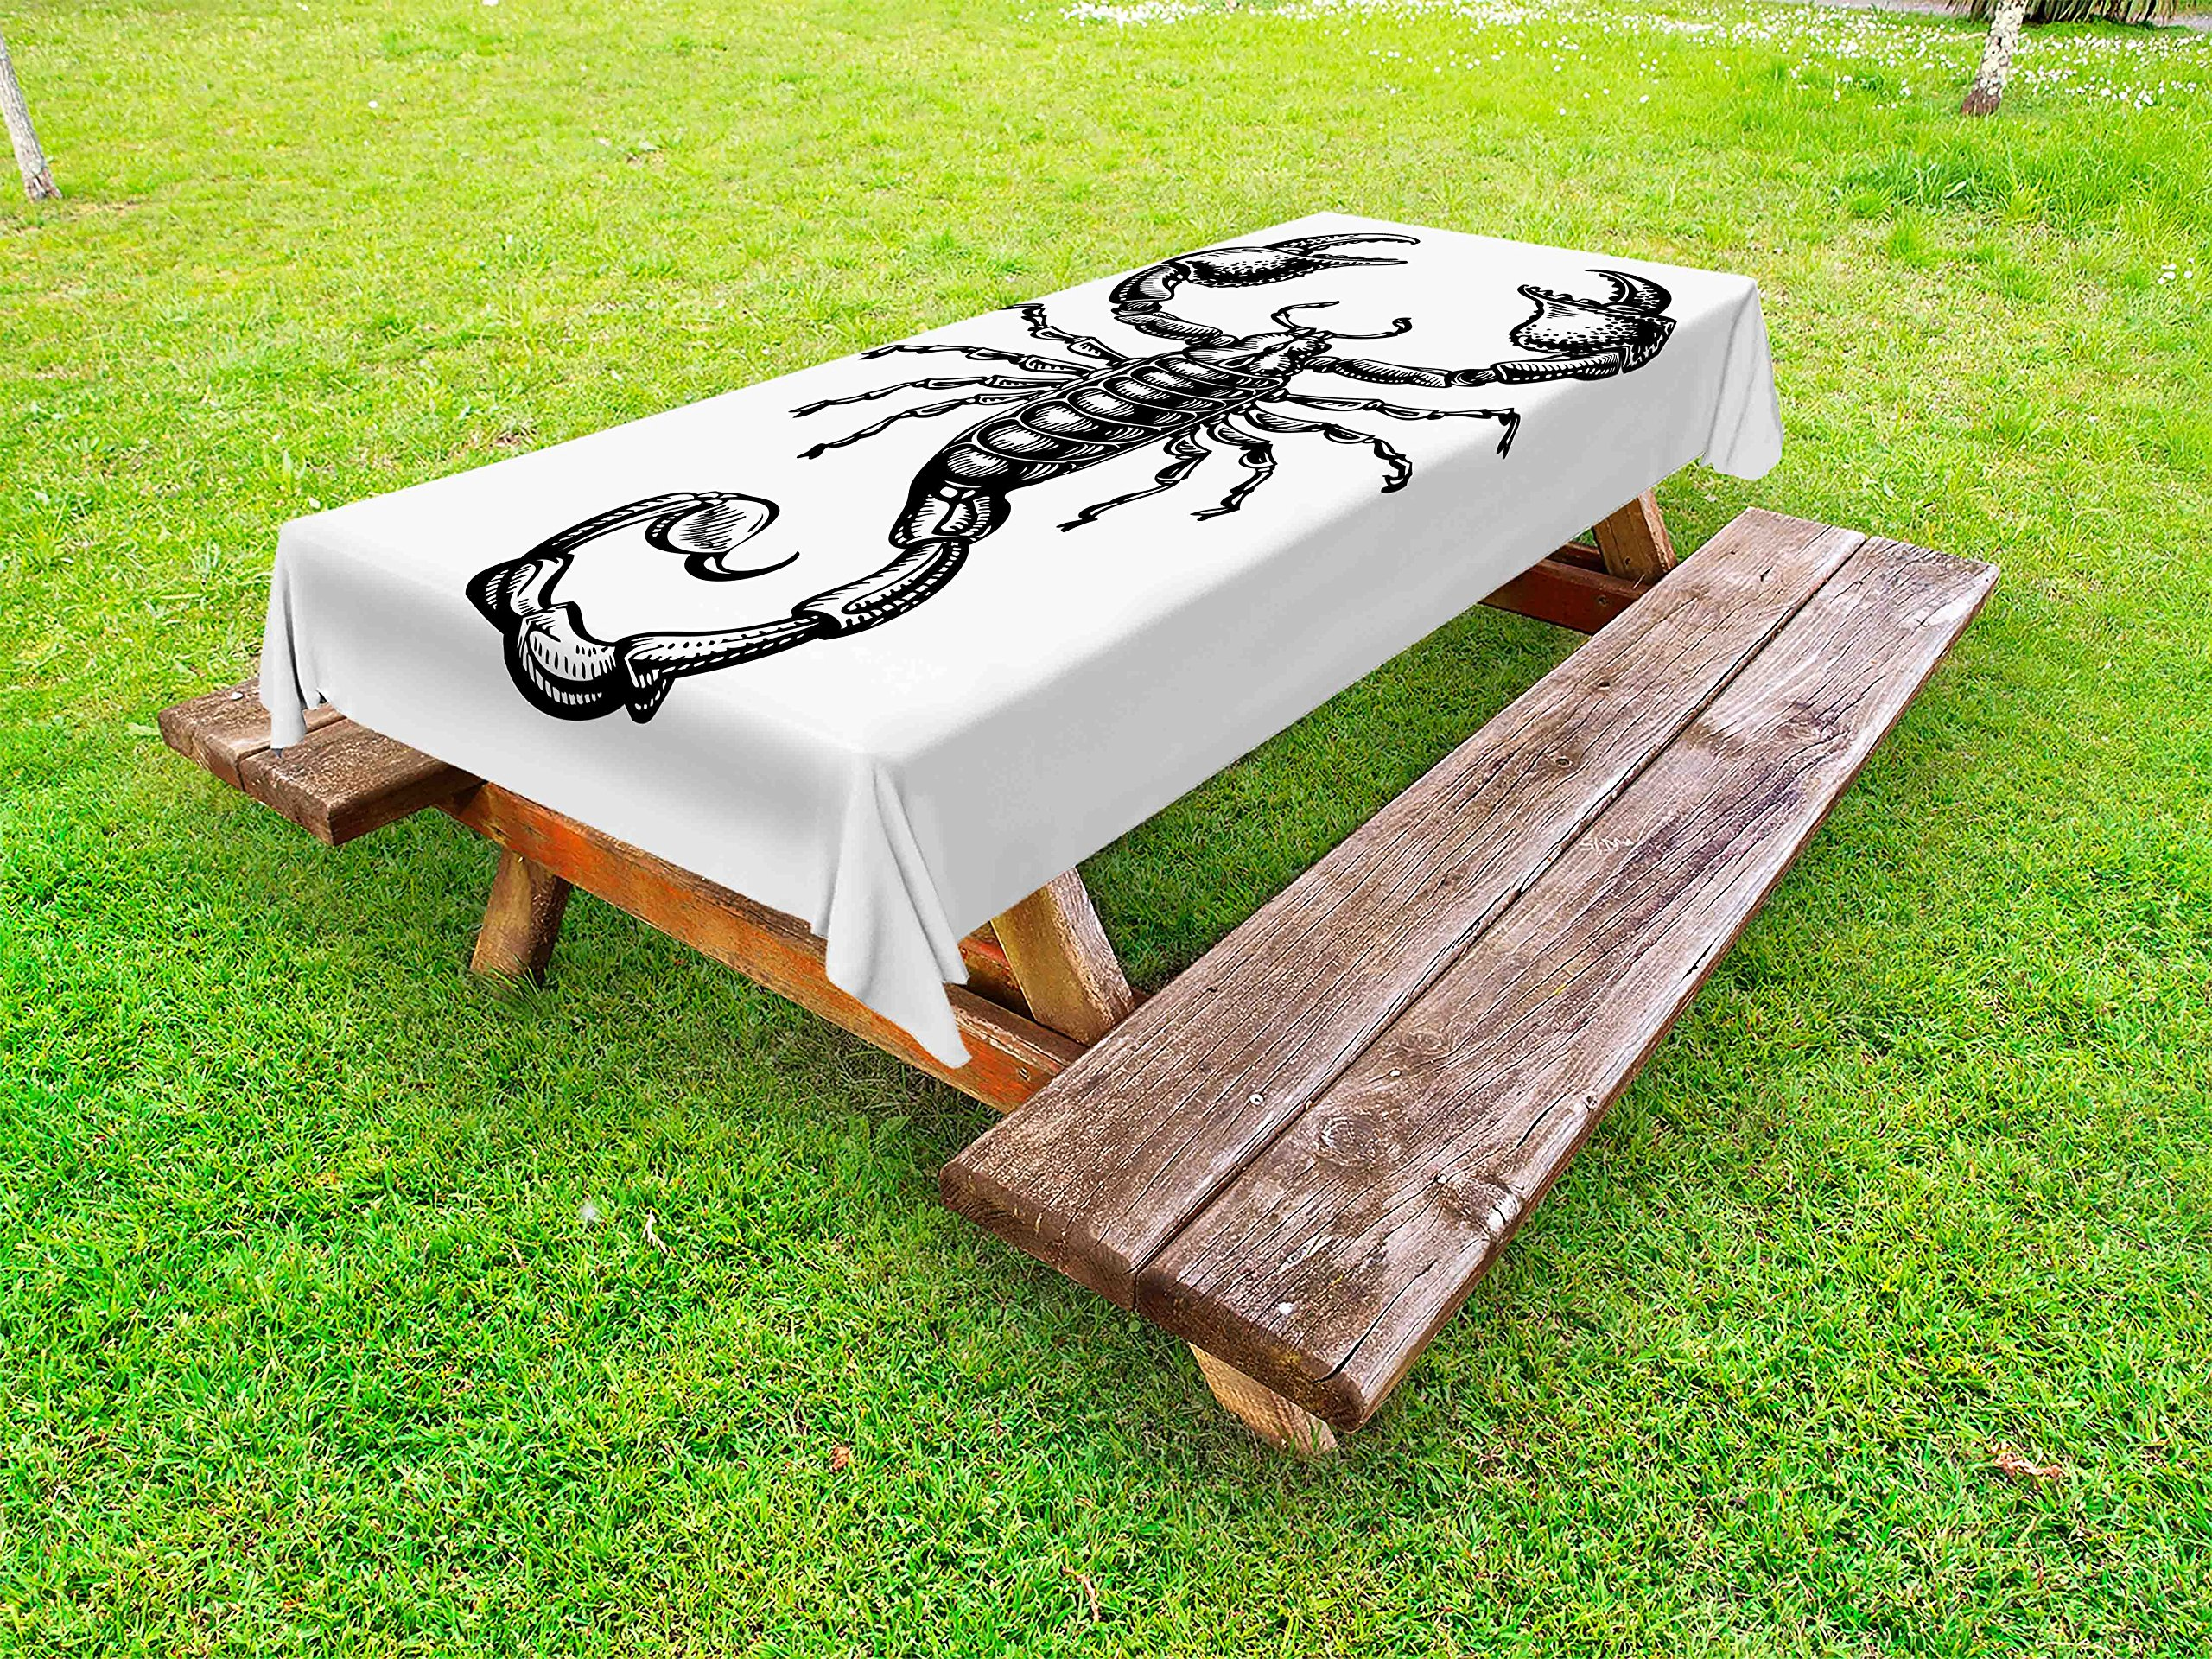 Ambesonne Zodiac Scorpio Outdoor Tablecloth, Monochrome Sign Sketch of a Scorpion Tattoo Animal Horoscopes Theme, Decorative Washable Picnic Table Cloth, 58 X 120 Inches, Charcoal Grey White